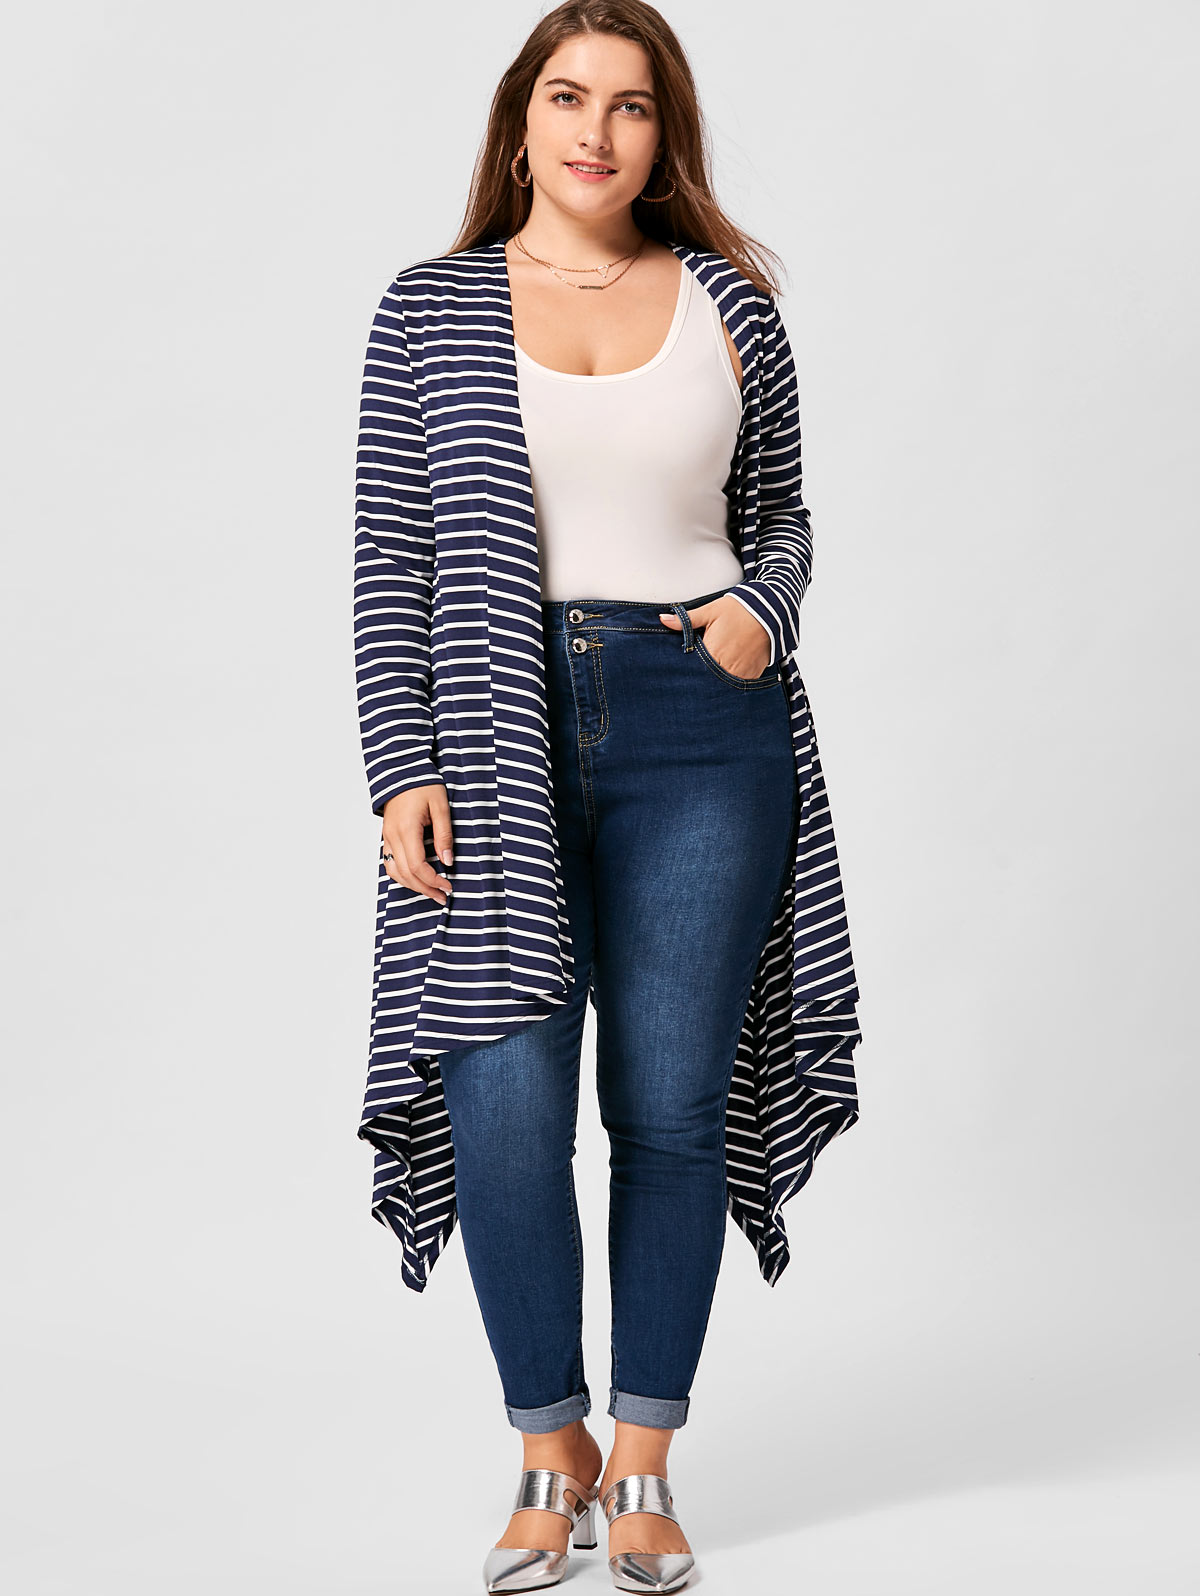 f3a745ca284 GAMISS Plus Size XL-5XL Striped Handkerchief Hem Cardigan Women Autumn  Casual Long Sleeve Top Open Front Cardigan Sweater Coat